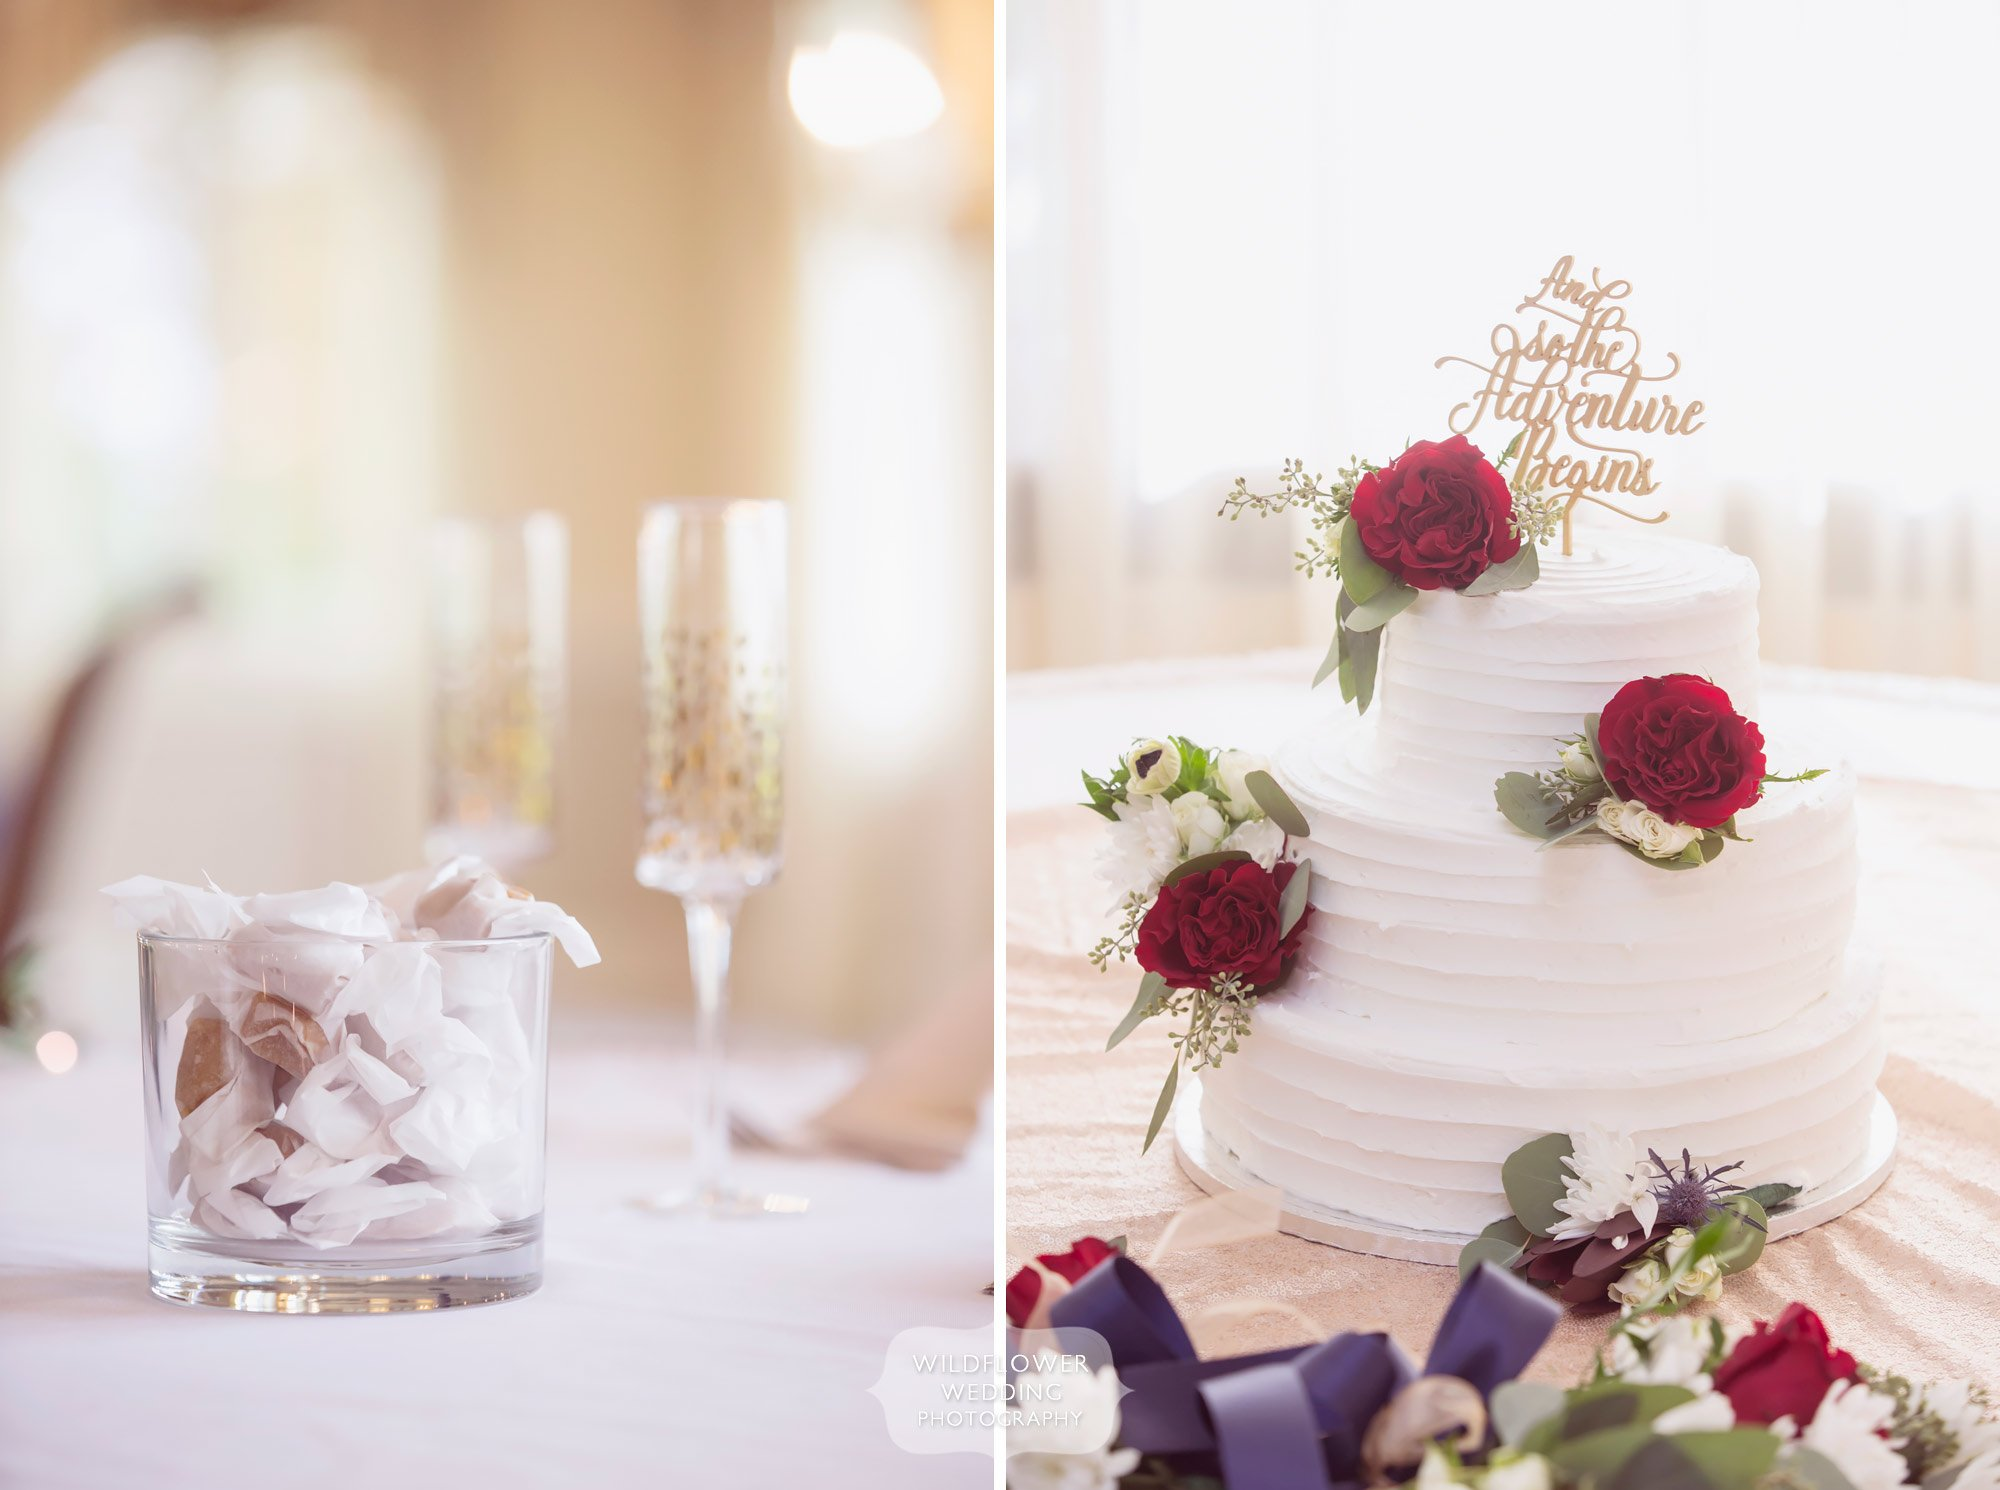 Rustic wedding reception with Anthropologie details at Jefferson City Country Club.